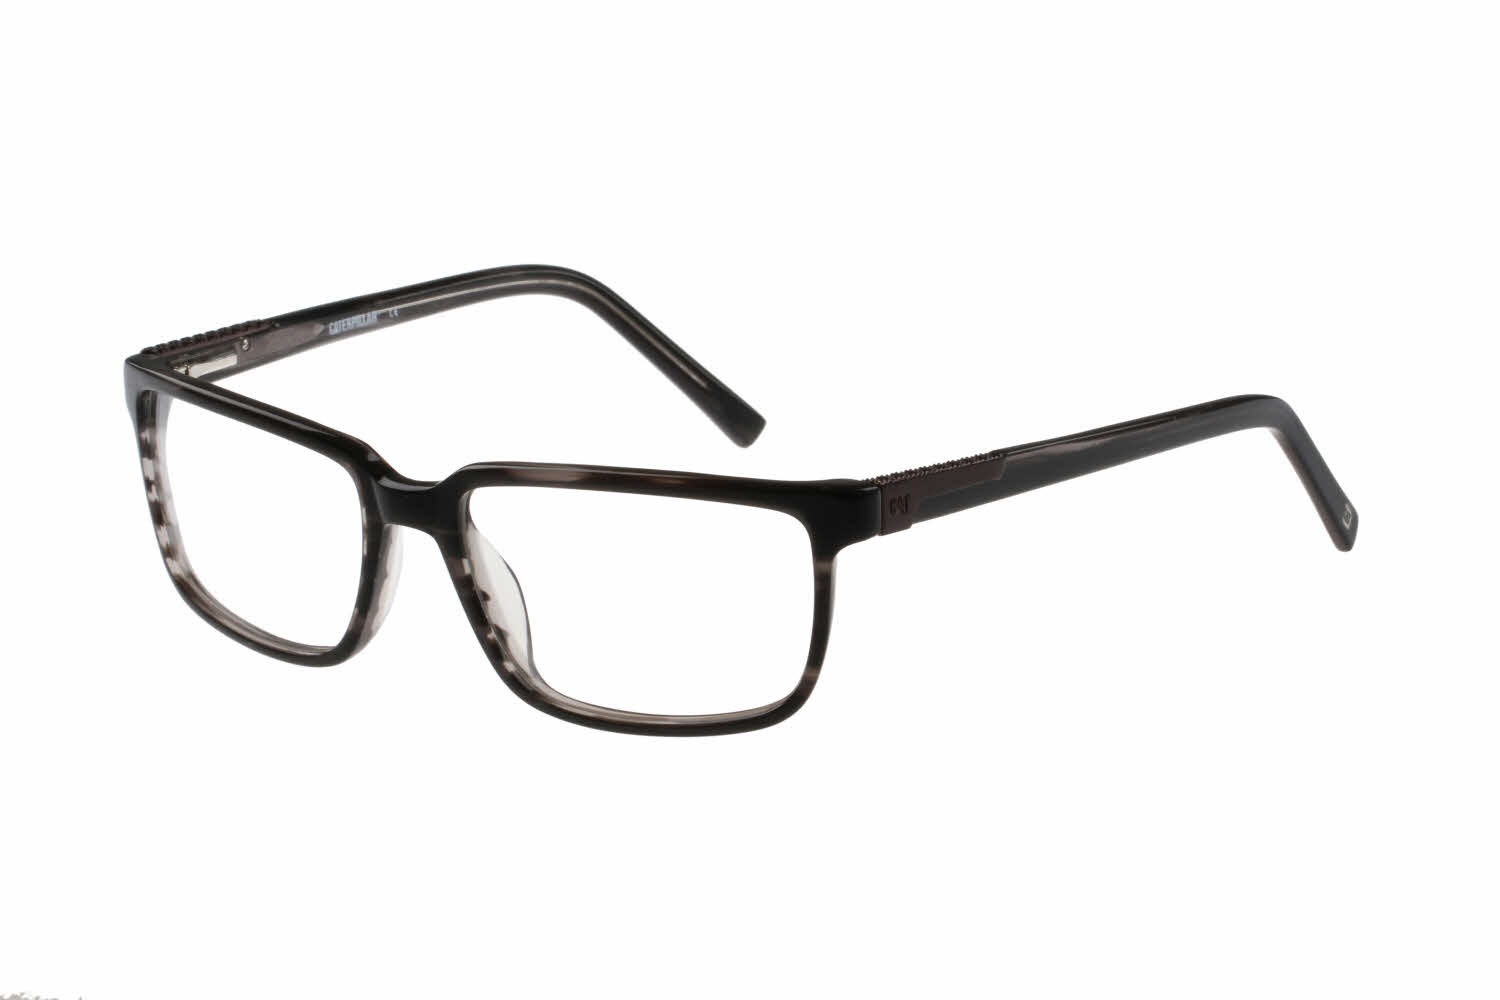 Caterpillar (large size) CTO E10 Eyeglasses Free Shipping